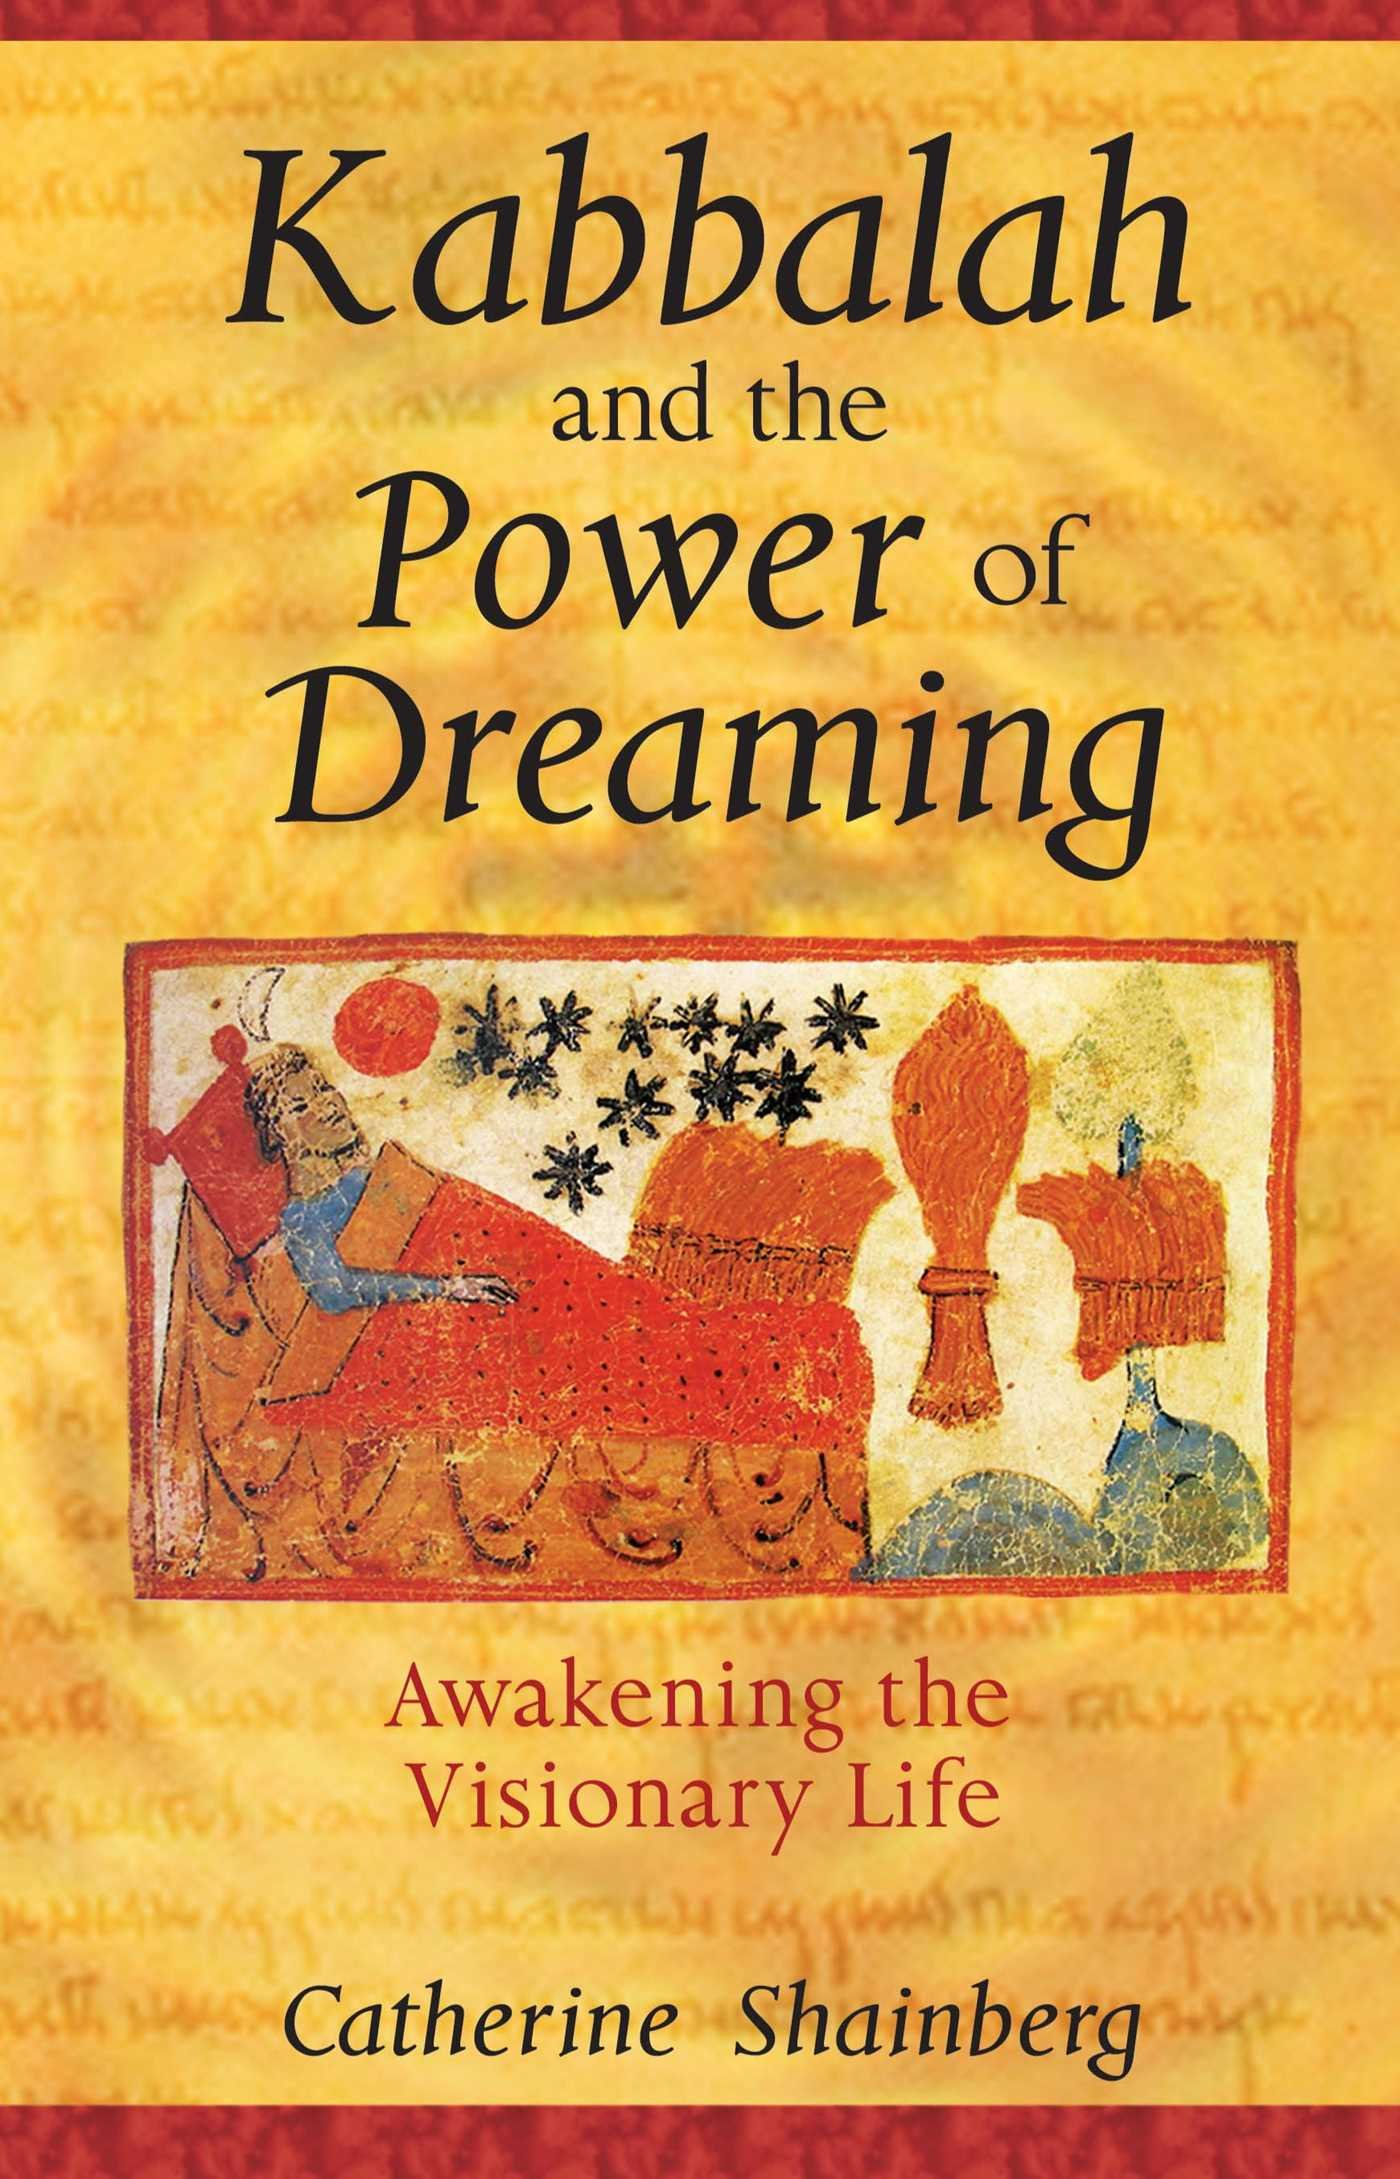 Kabbalah And The Power Of Dreaming Awakening The Visionary Life Shainberg Catherine 9781594770470 Amazon Com Books Beginning a new series of working groups in the tree of life, he decided… kabbalah and the power of dreaming